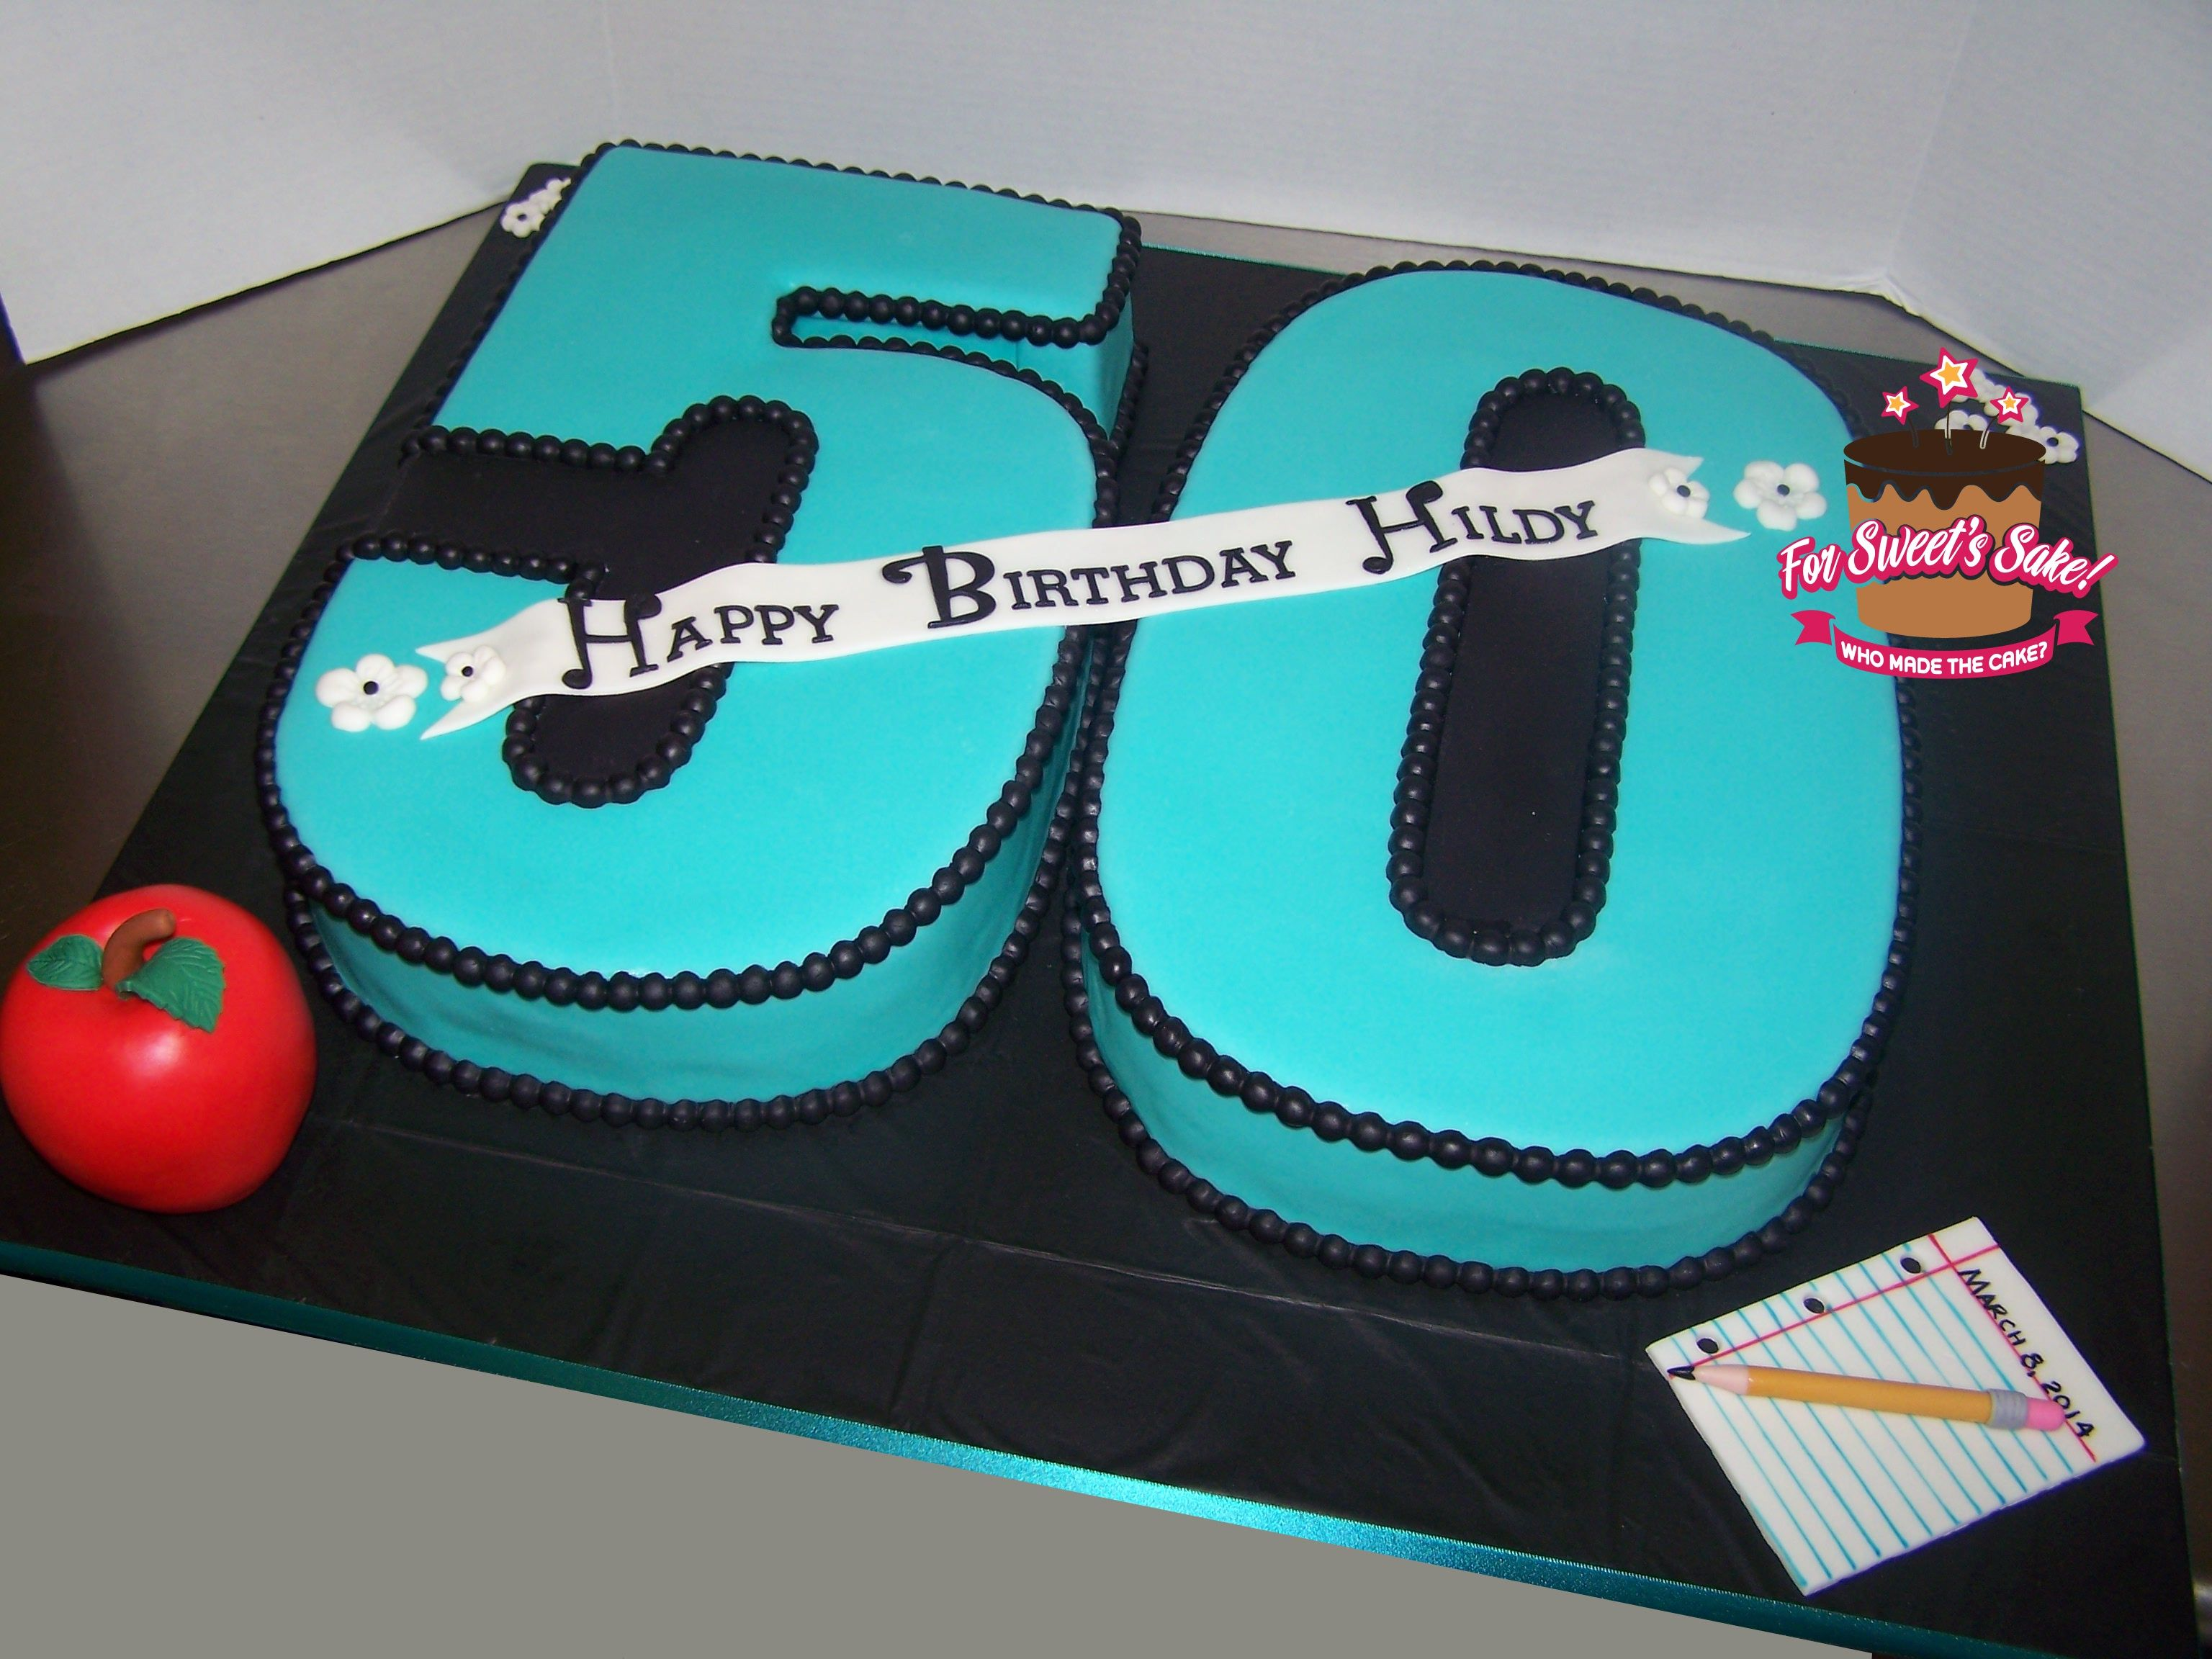 Peachy Fiftieth Birthday Cake With Images 50Th Birthday Cake Fifty Funny Birthday Cards Online Alyptdamsfinfo